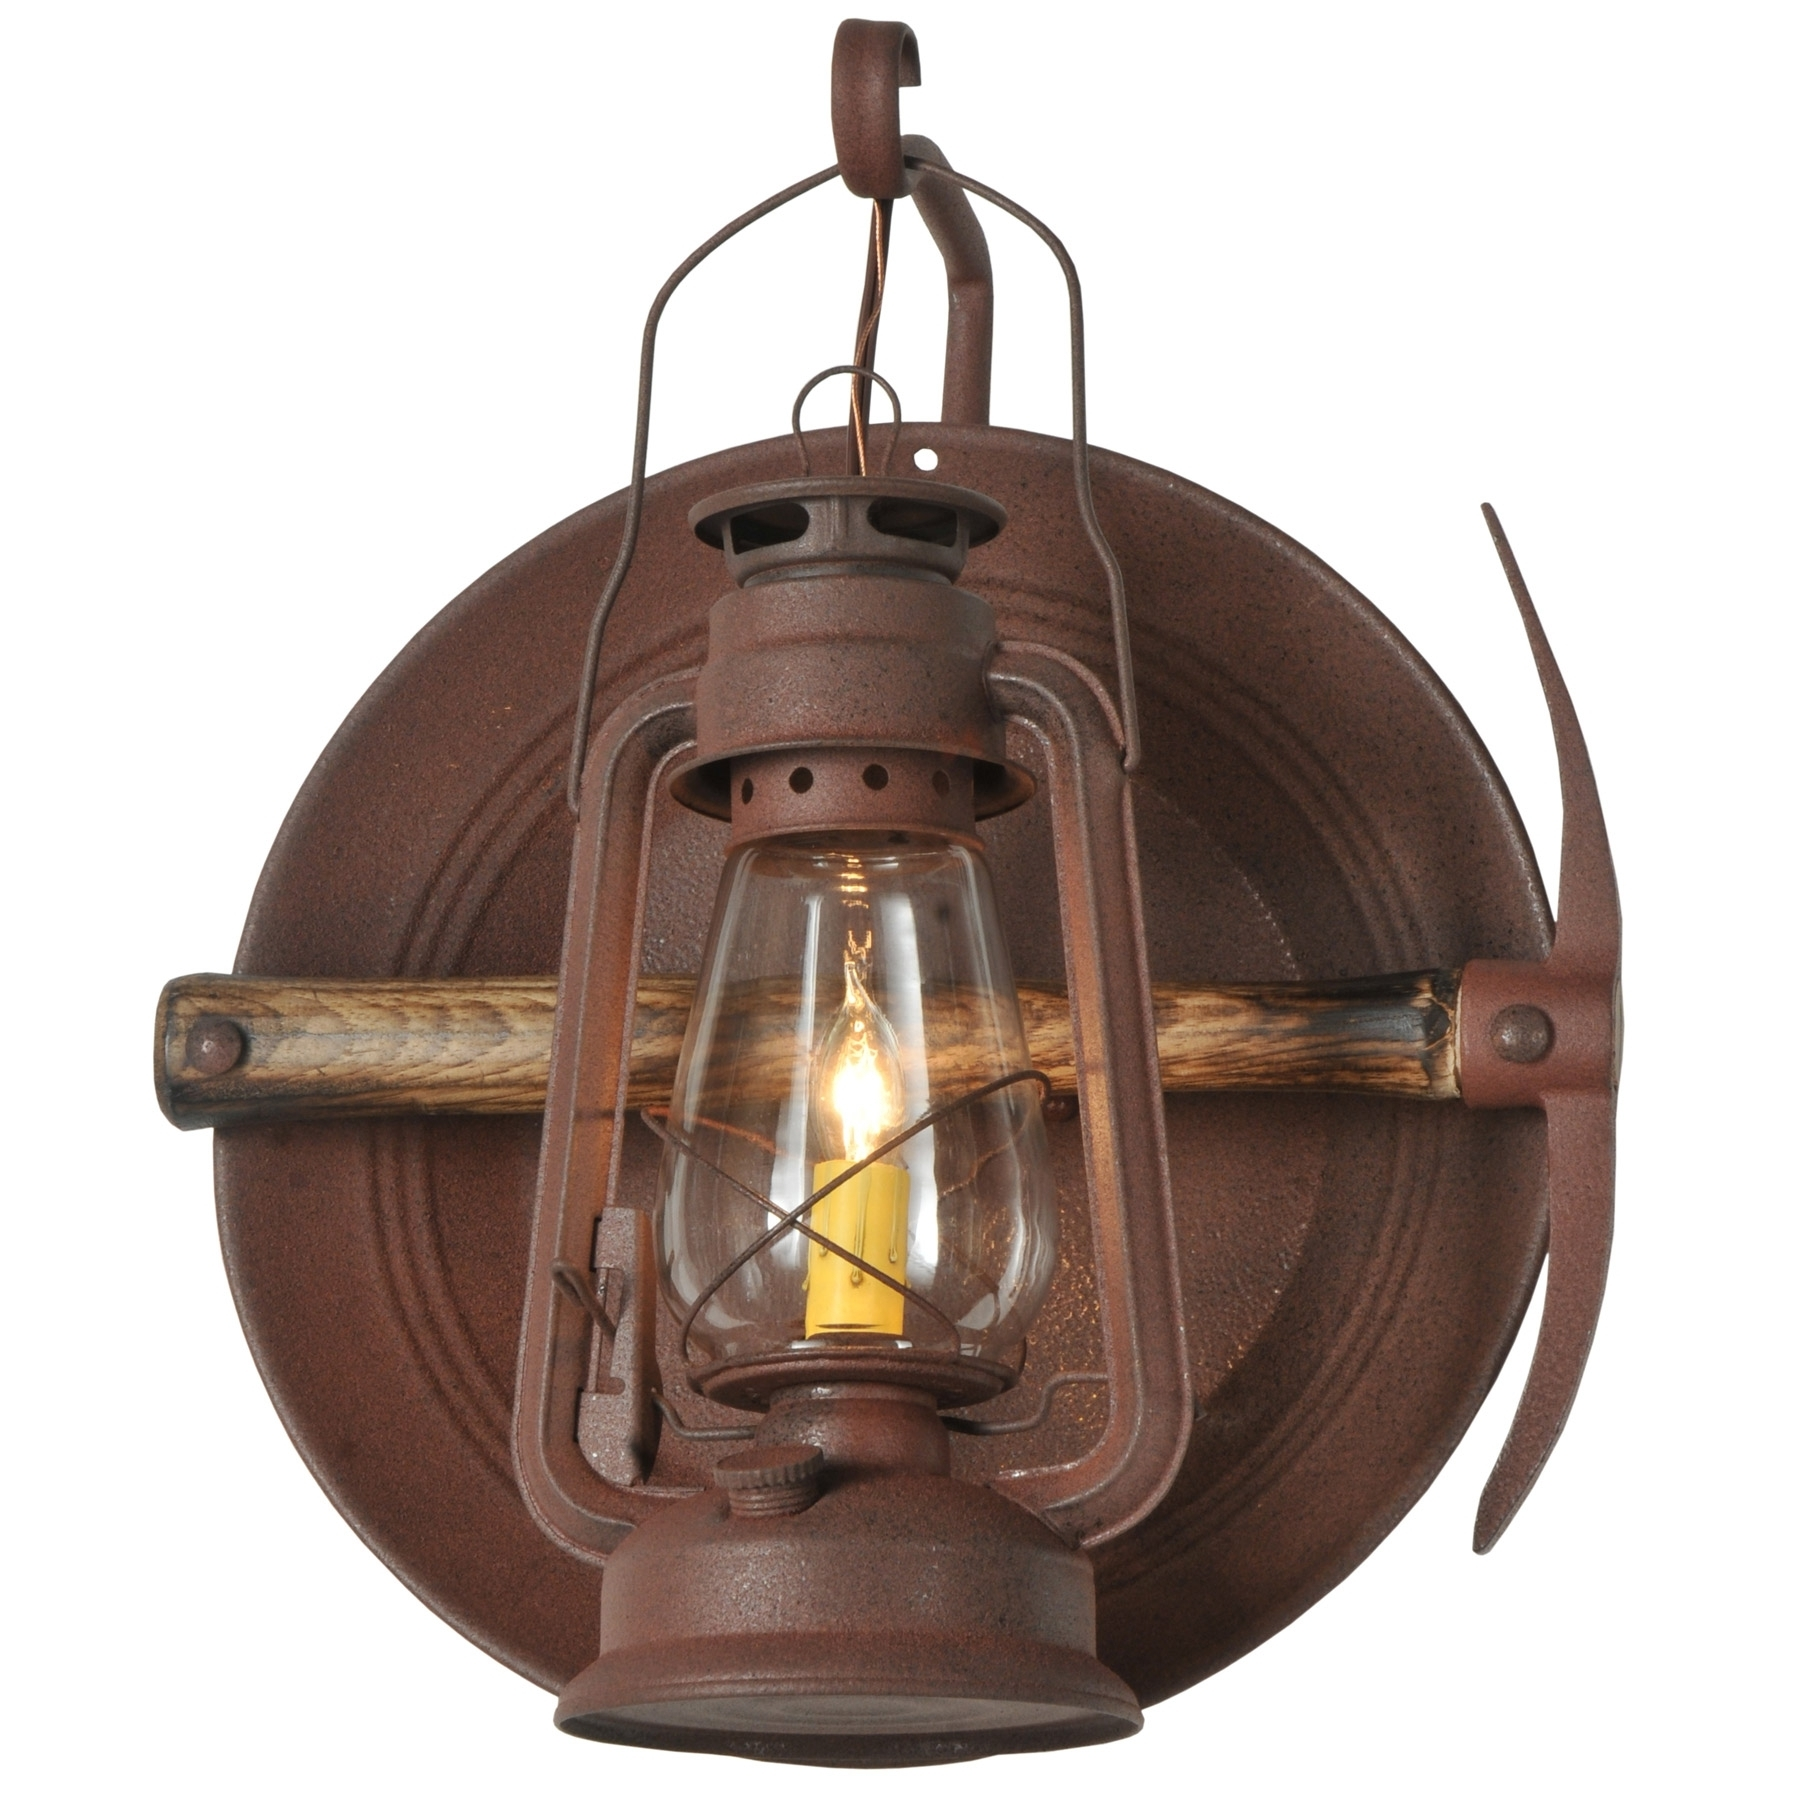 2019 Vintage And Rustic Outdoor Lighting Pertaining To Rustic Outdoor Light Fixtures Mission Style Kitchen Table Big Green (View 6 of 20)